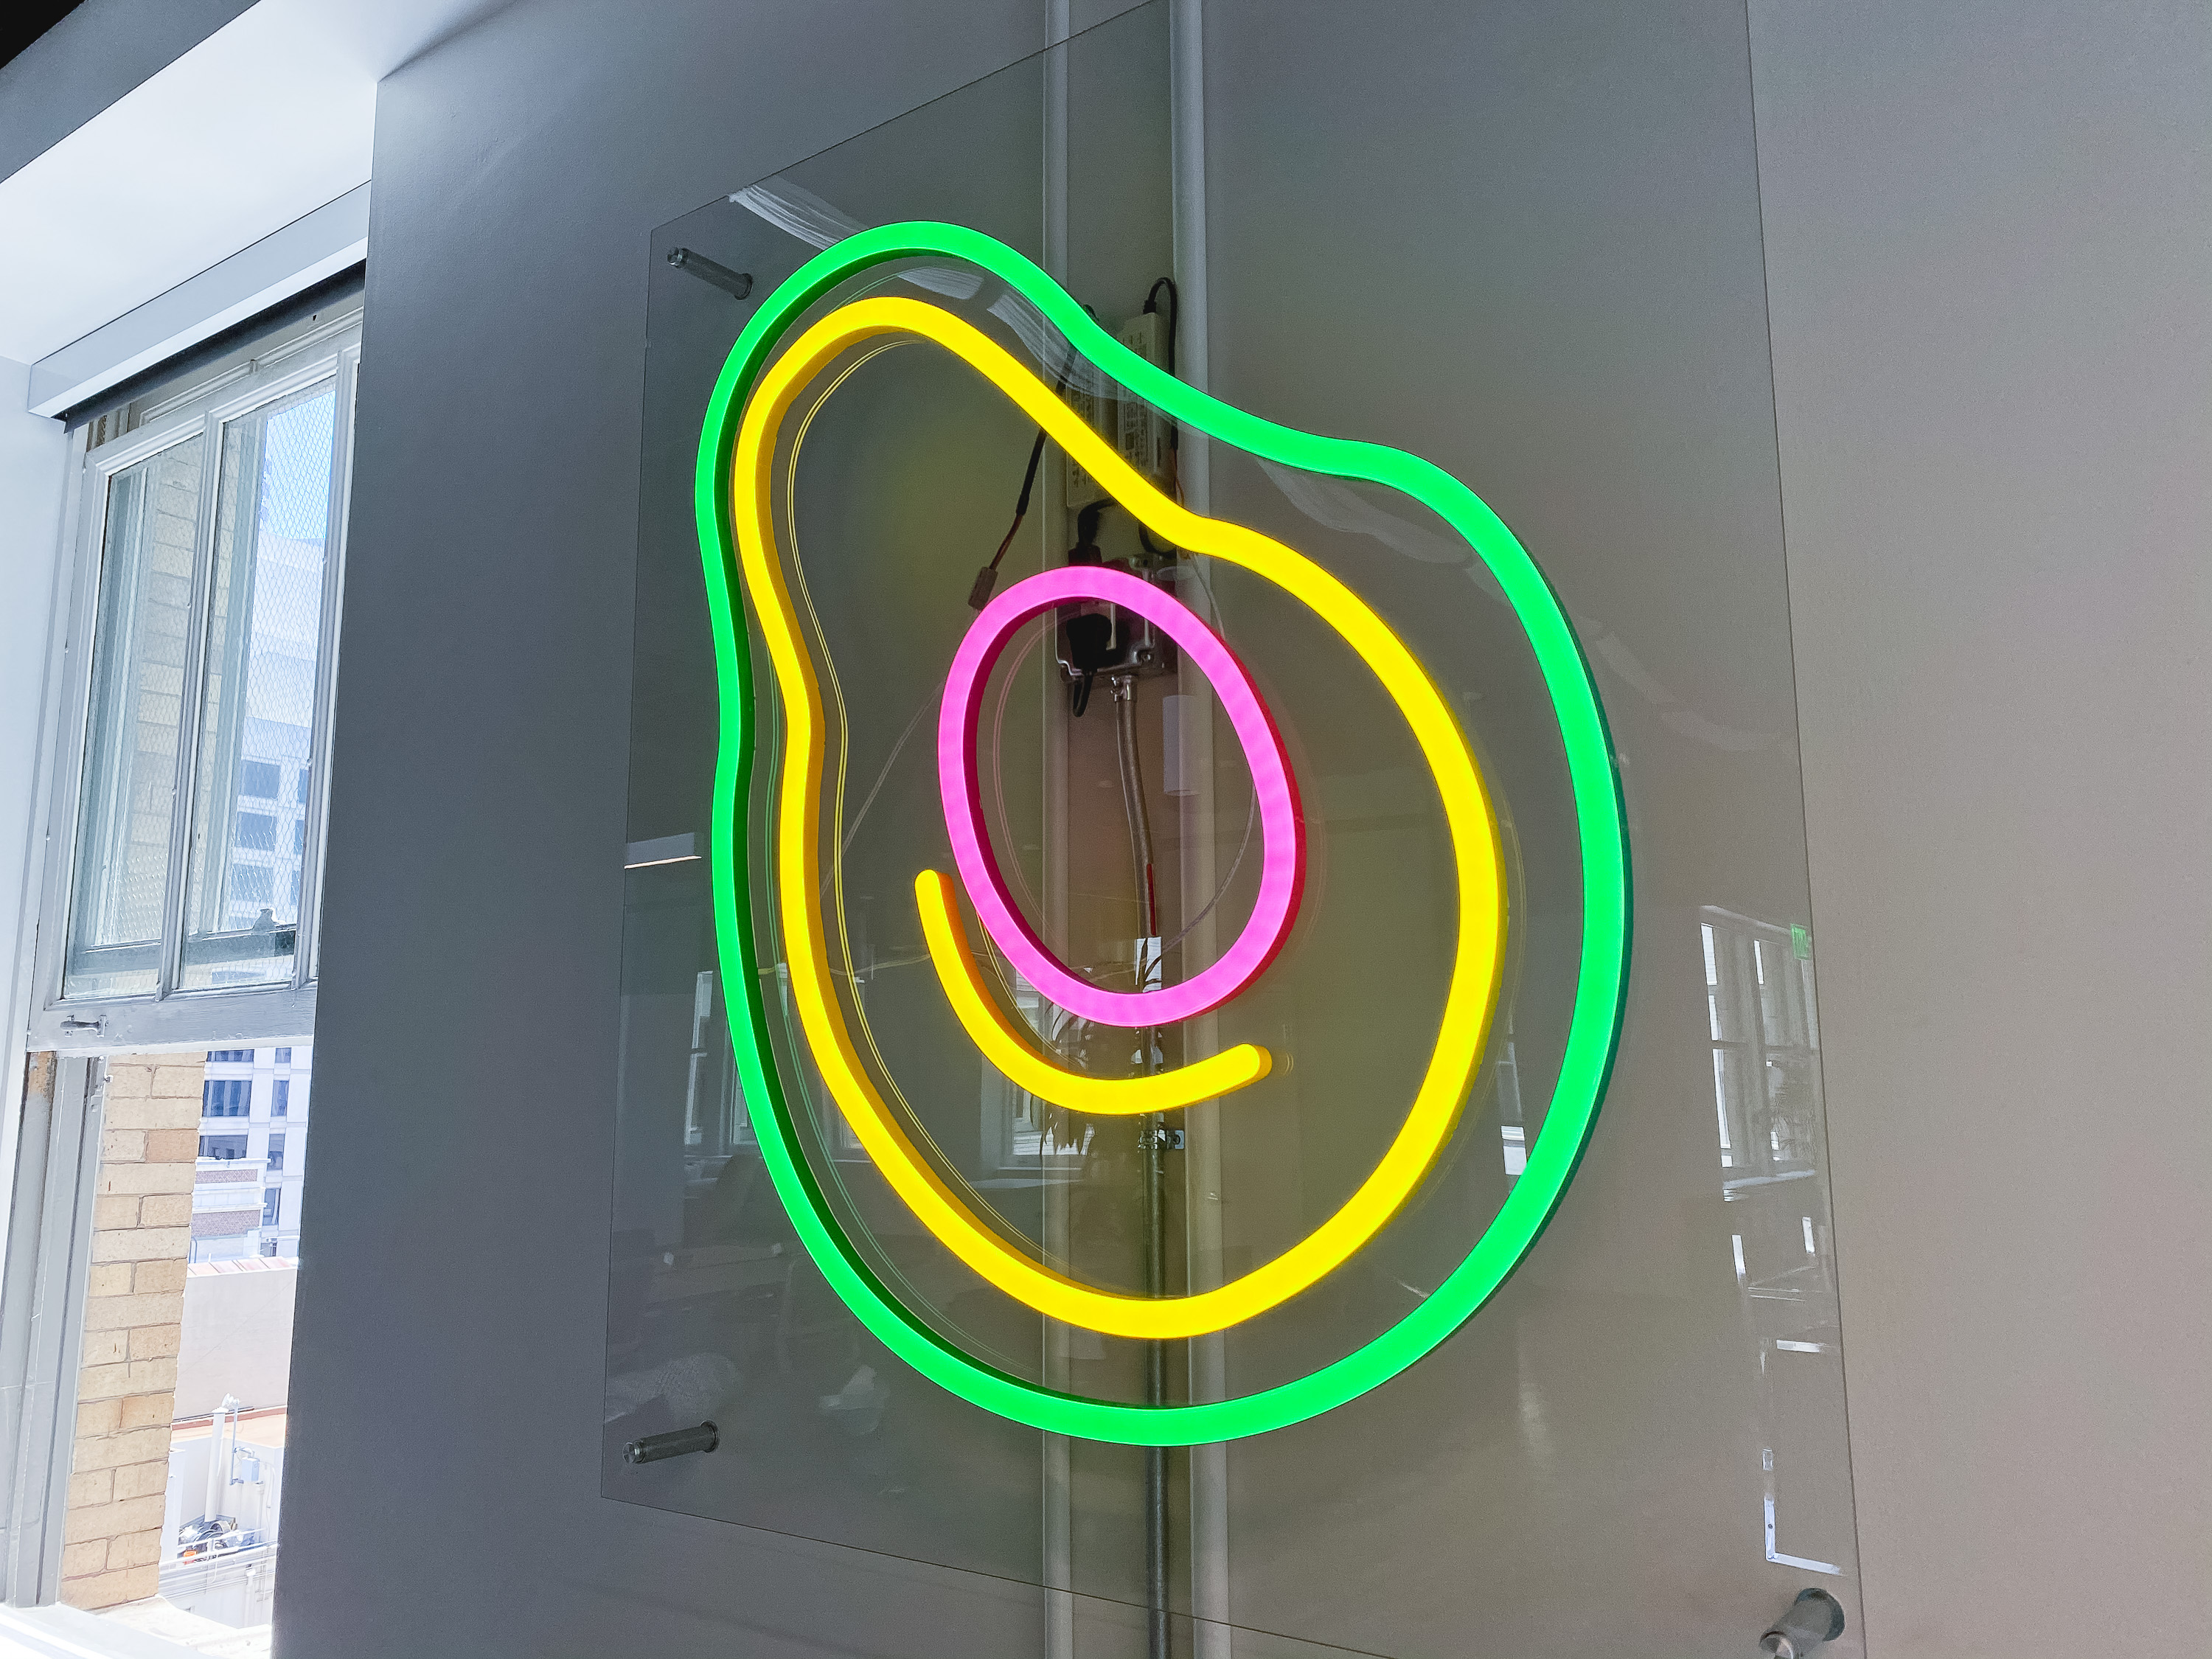 Neon avocado sign with clear acrylic backer on white wall for the San Francisco office of Meltwater, a software as a service company that develops and markets media monitoring and business intelligence software.